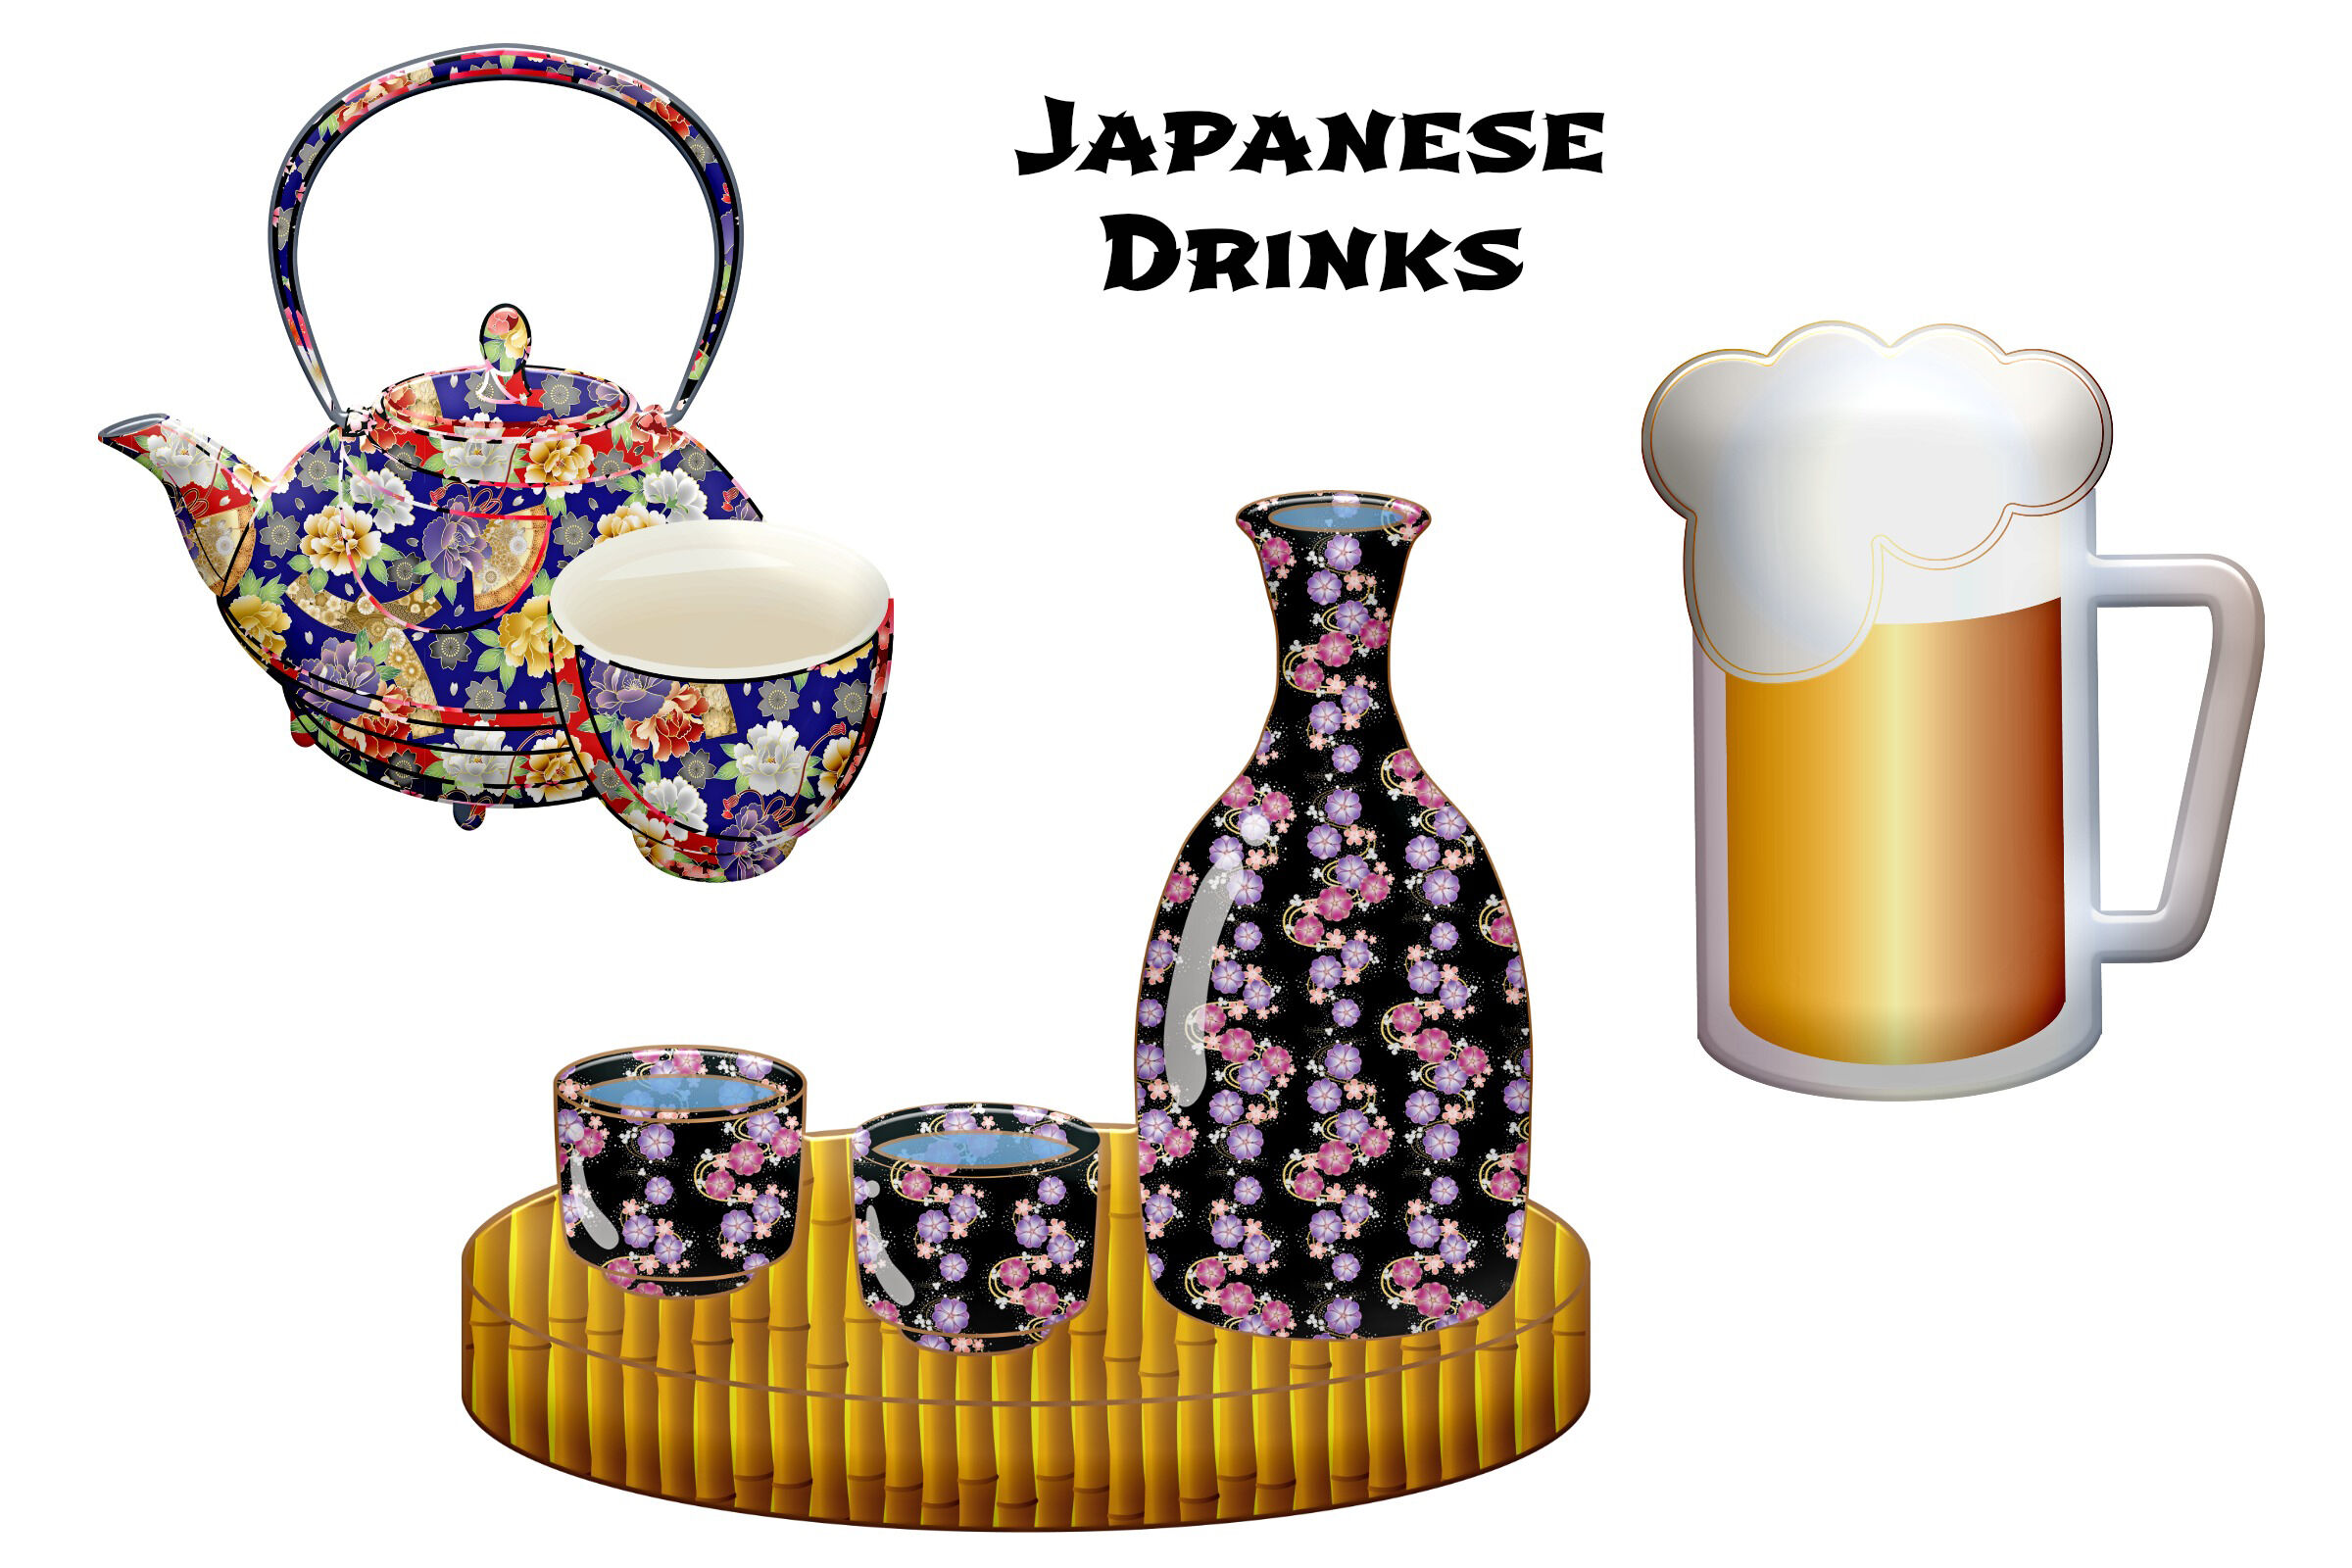 Japanese Food and Elements Clip Art By Me and Ameliè ... (2400 x 1600 Pixel)